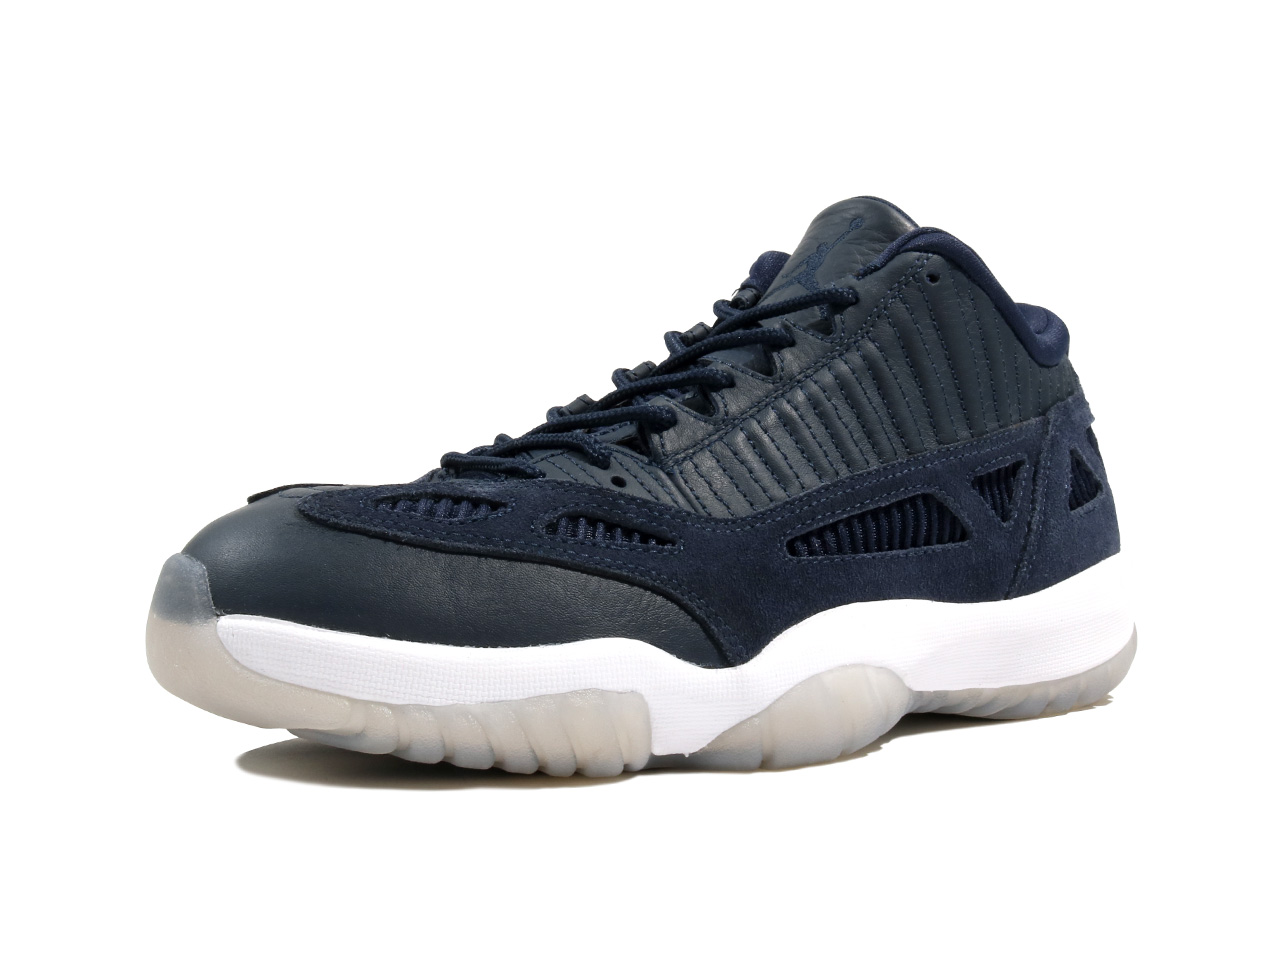 nike_air_jordan_11_retoro_low_ie_919712_400